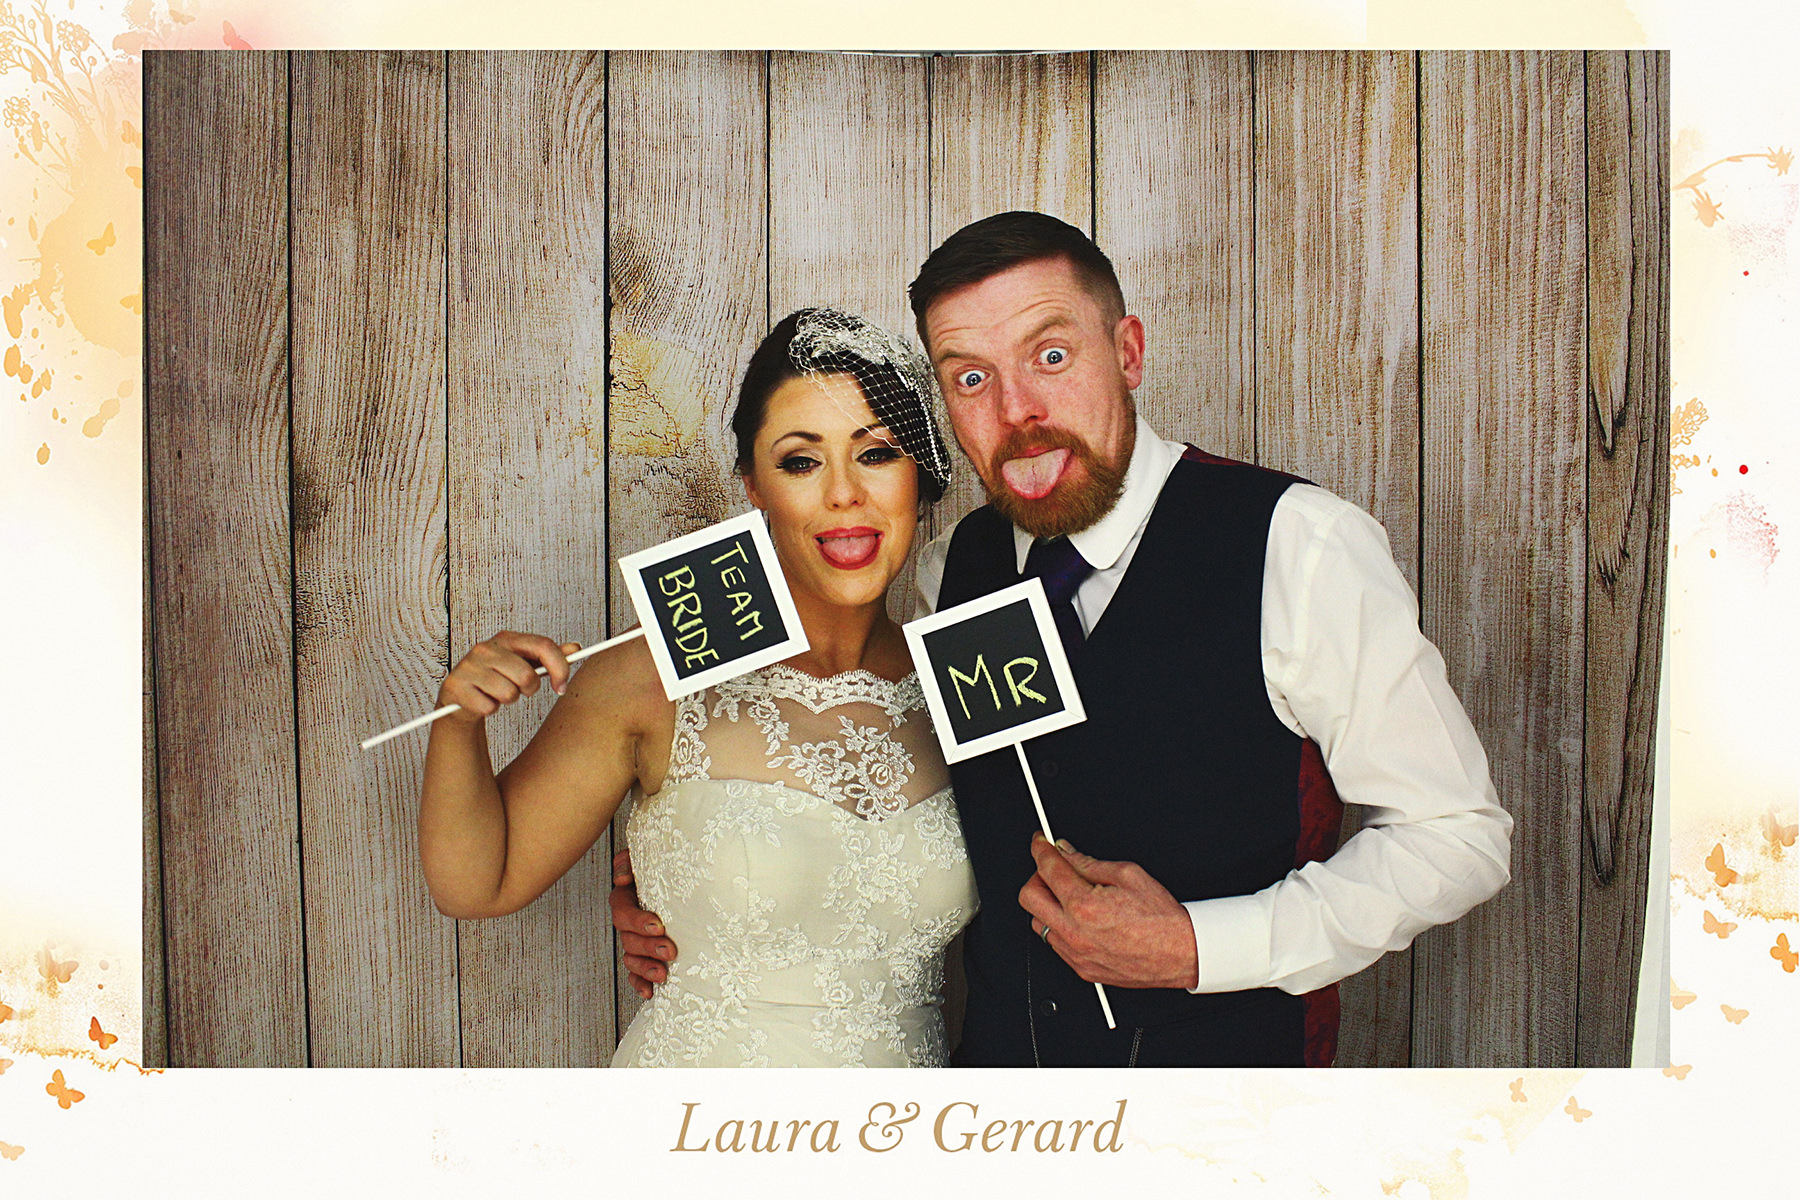 Photobooth Ireland 002 - Photobooth in Ireland |What is a Photobooth and Why You Should Have Photobooth At Your Wedding ?